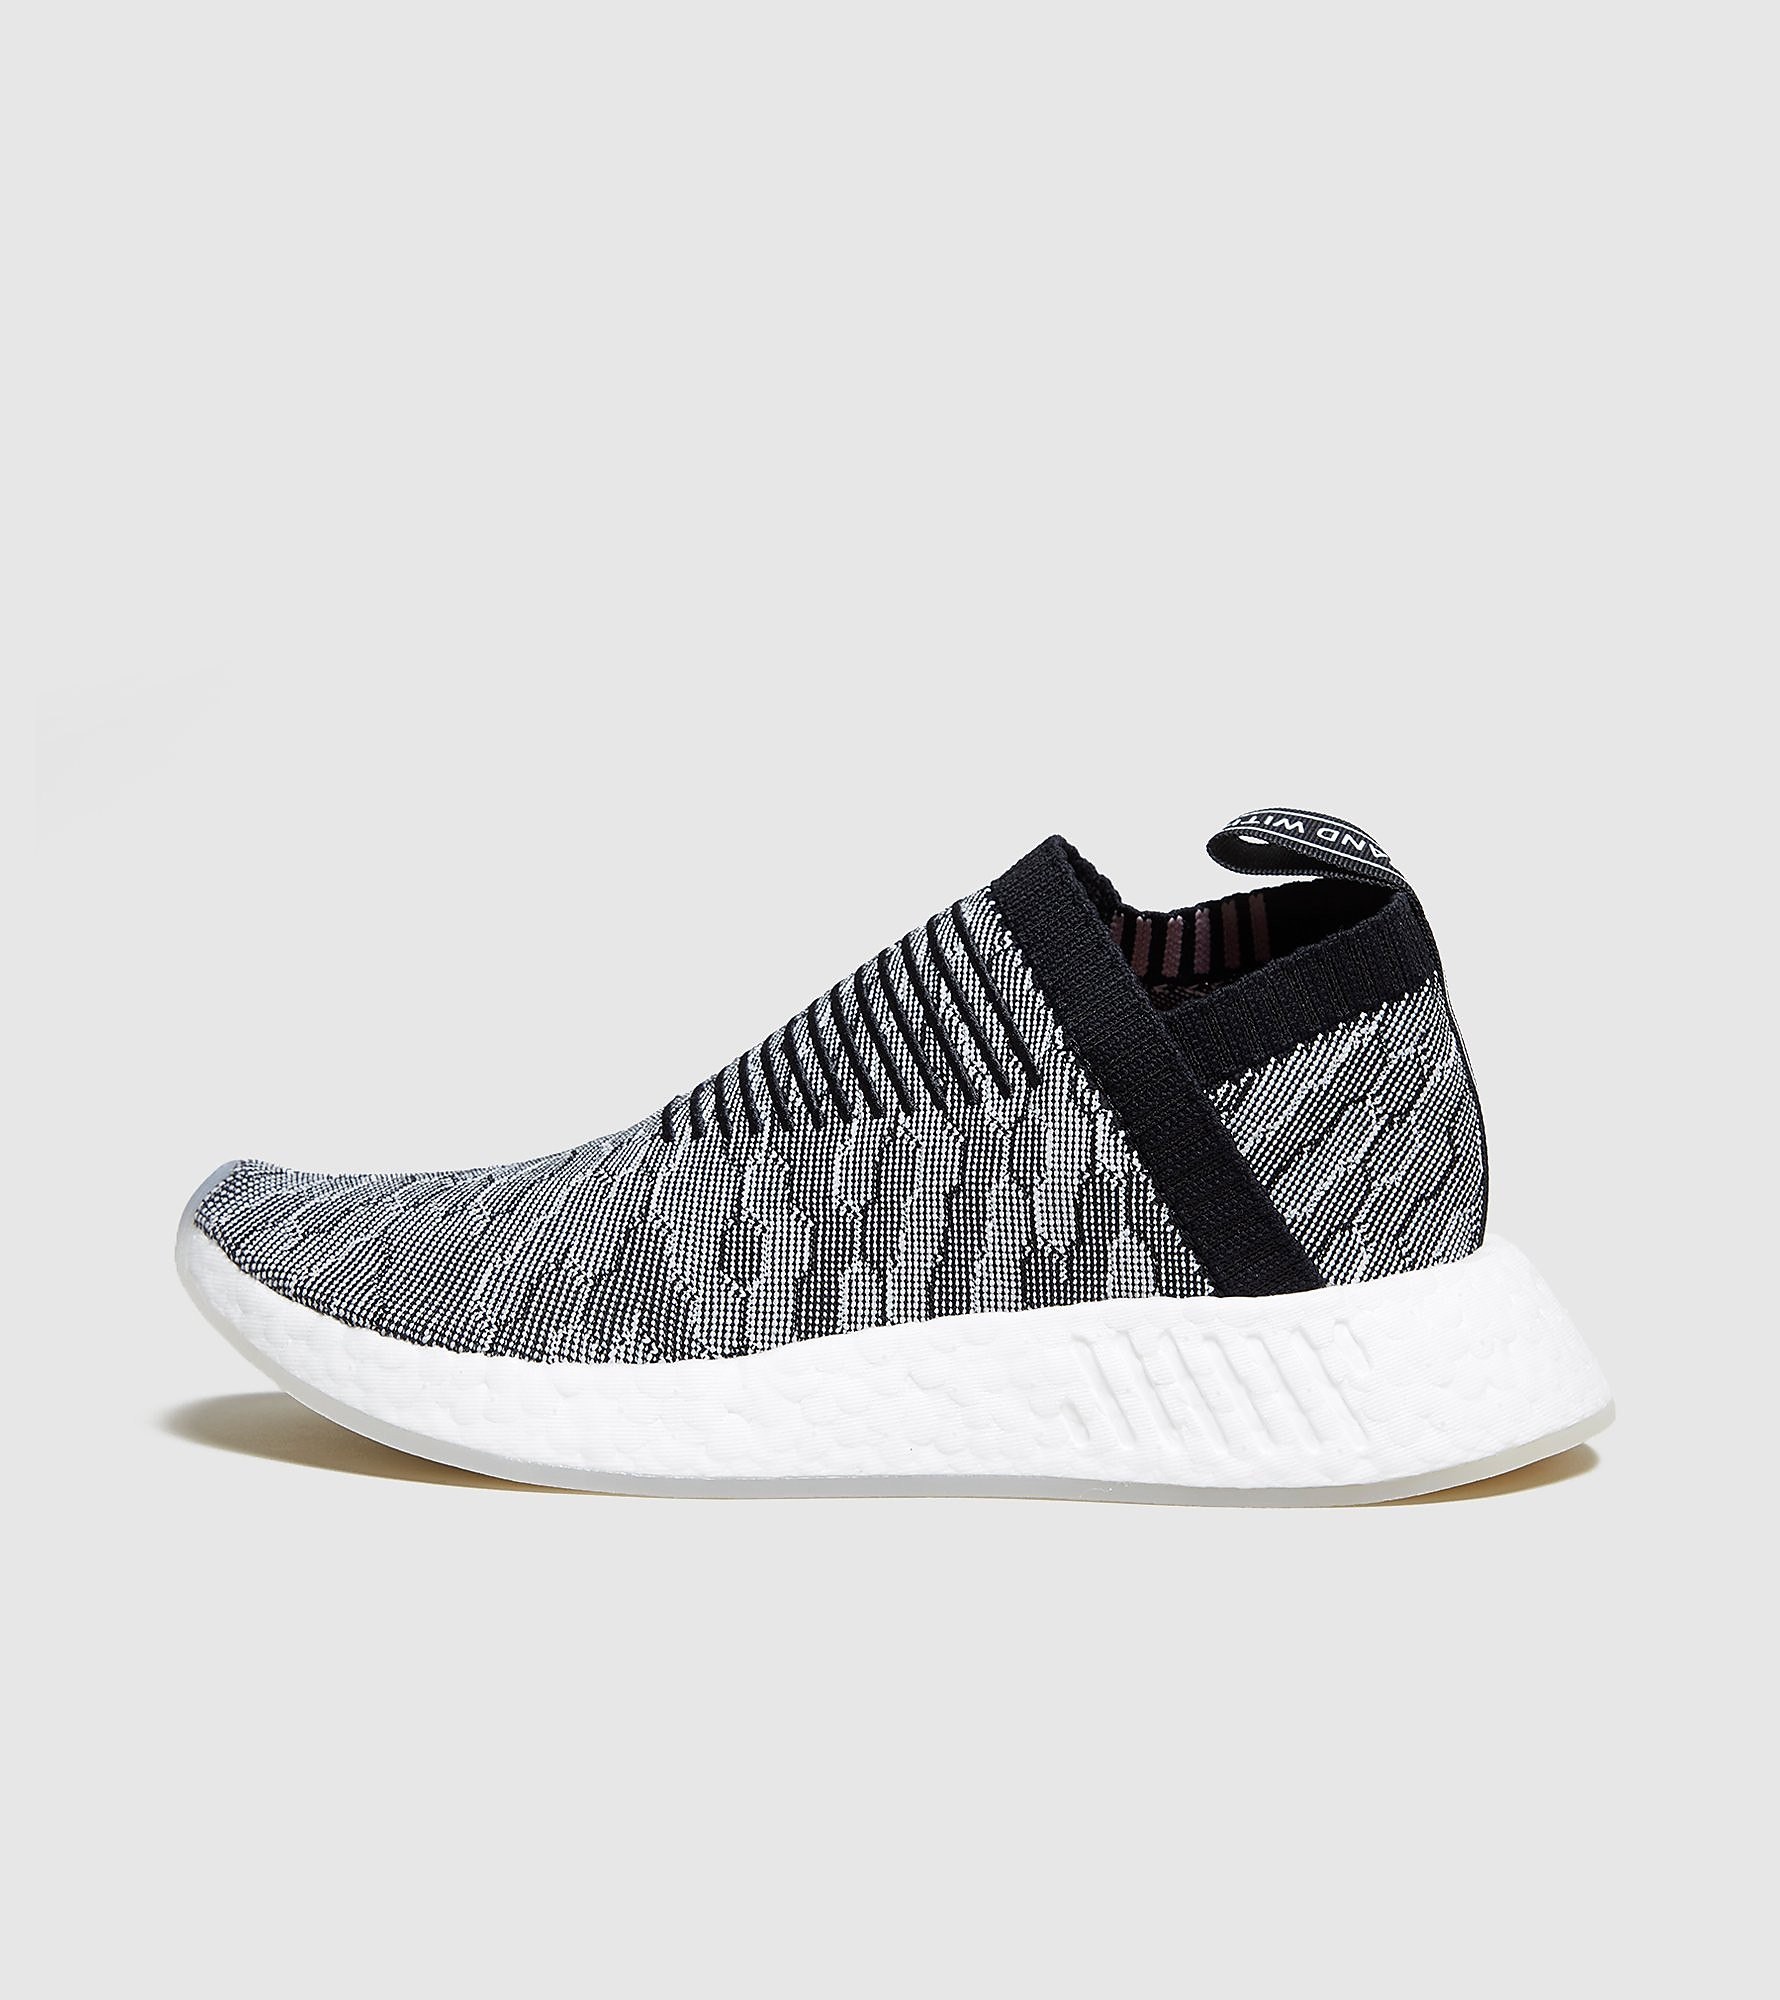 adidas Originals NMD City Sock Boost donna